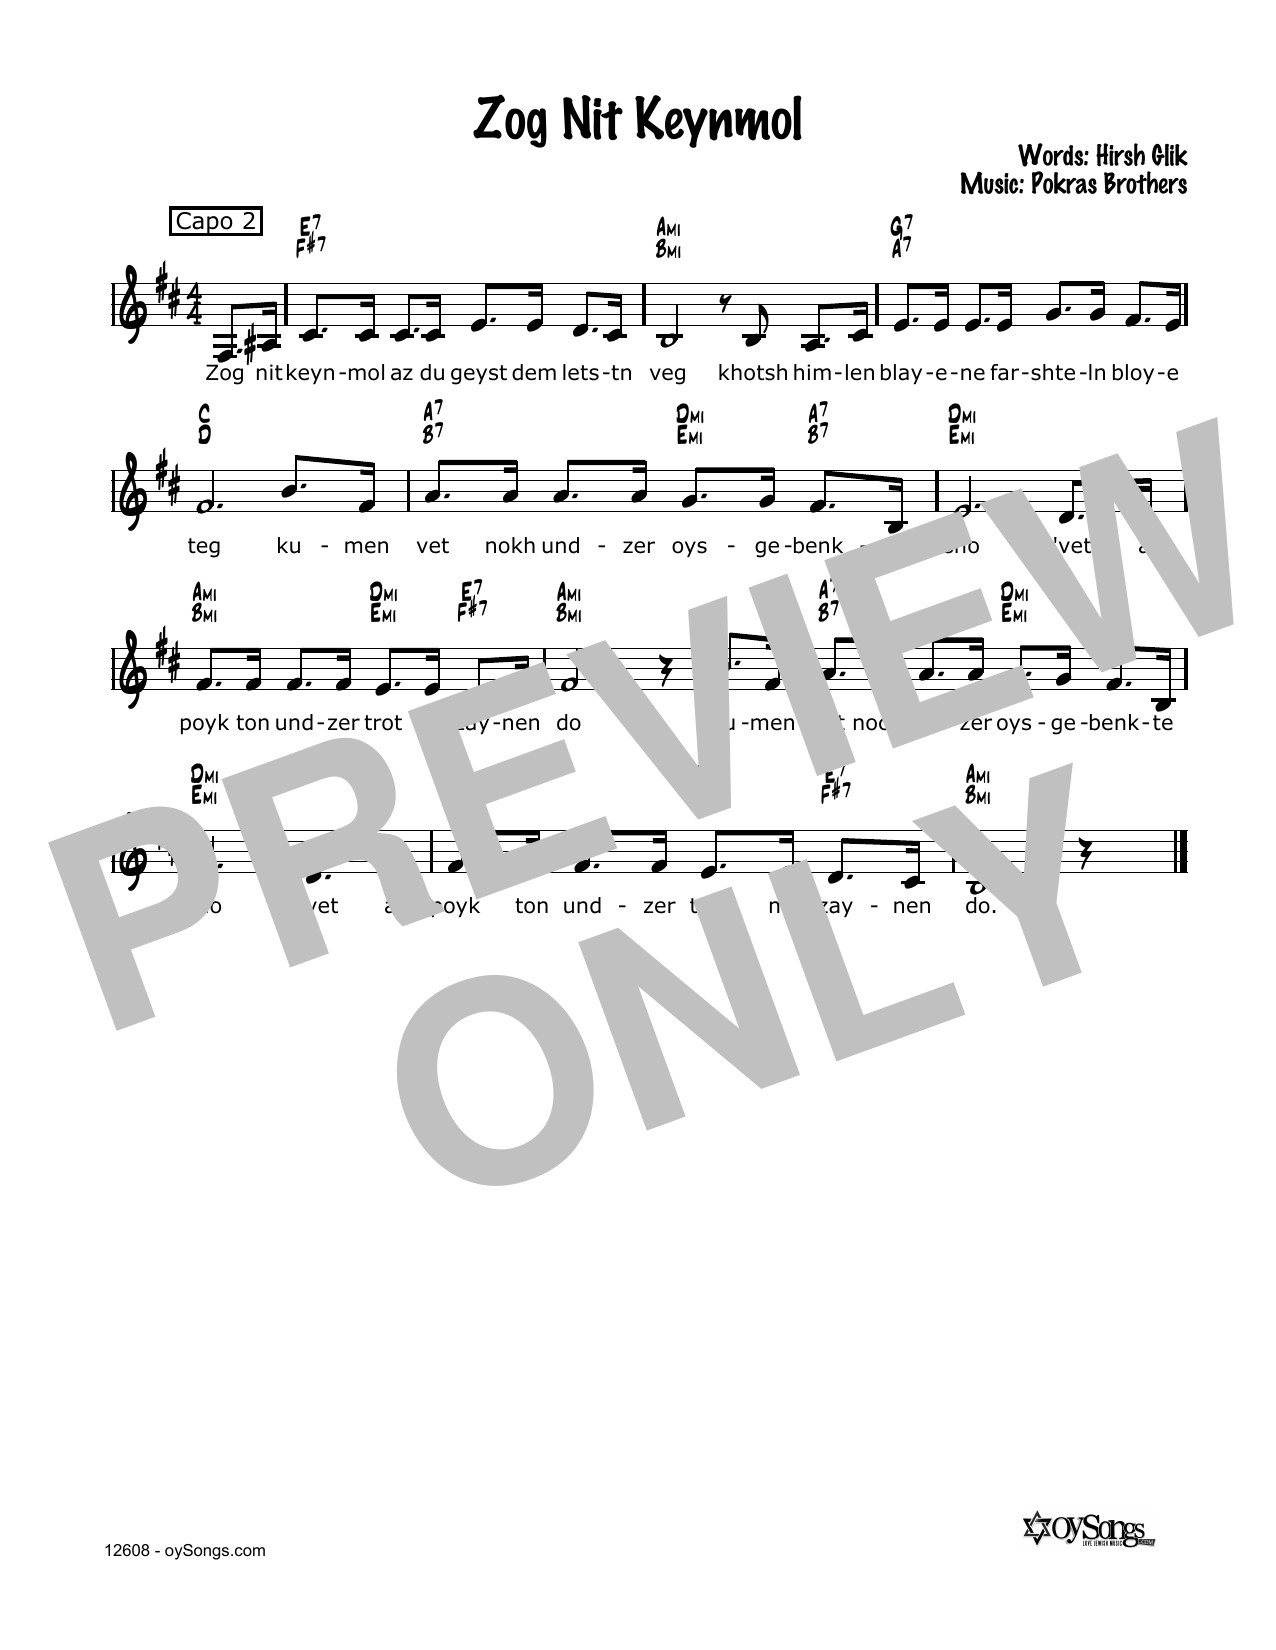 Cindy Paley Zog Nit Keynmol sheet music notes and chords. Download Printable PDF.